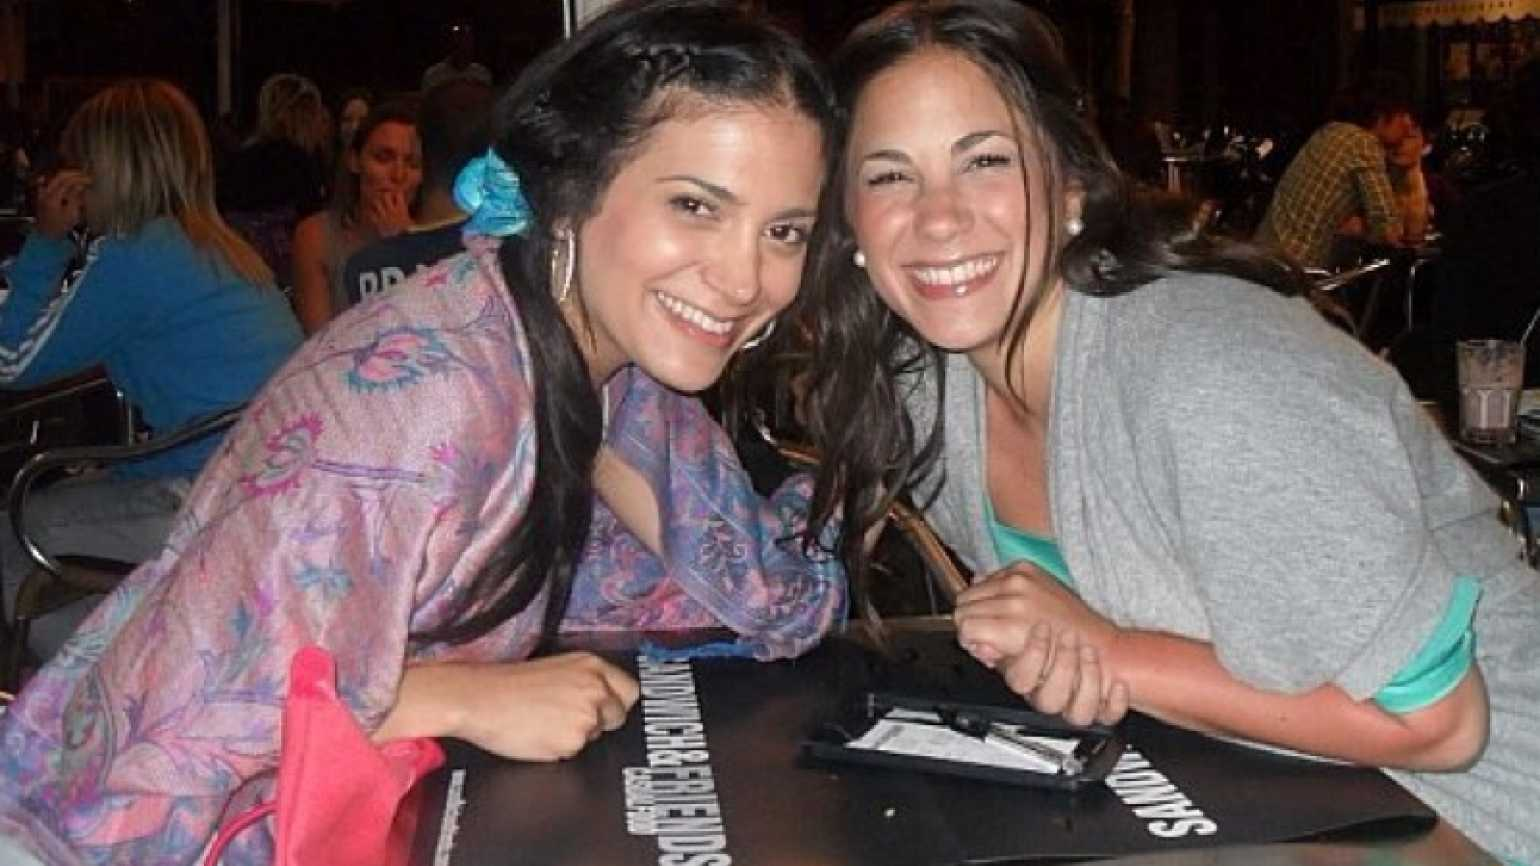 Mysterious Ways blogger Diana Aydin's older twin sisters, smiling together